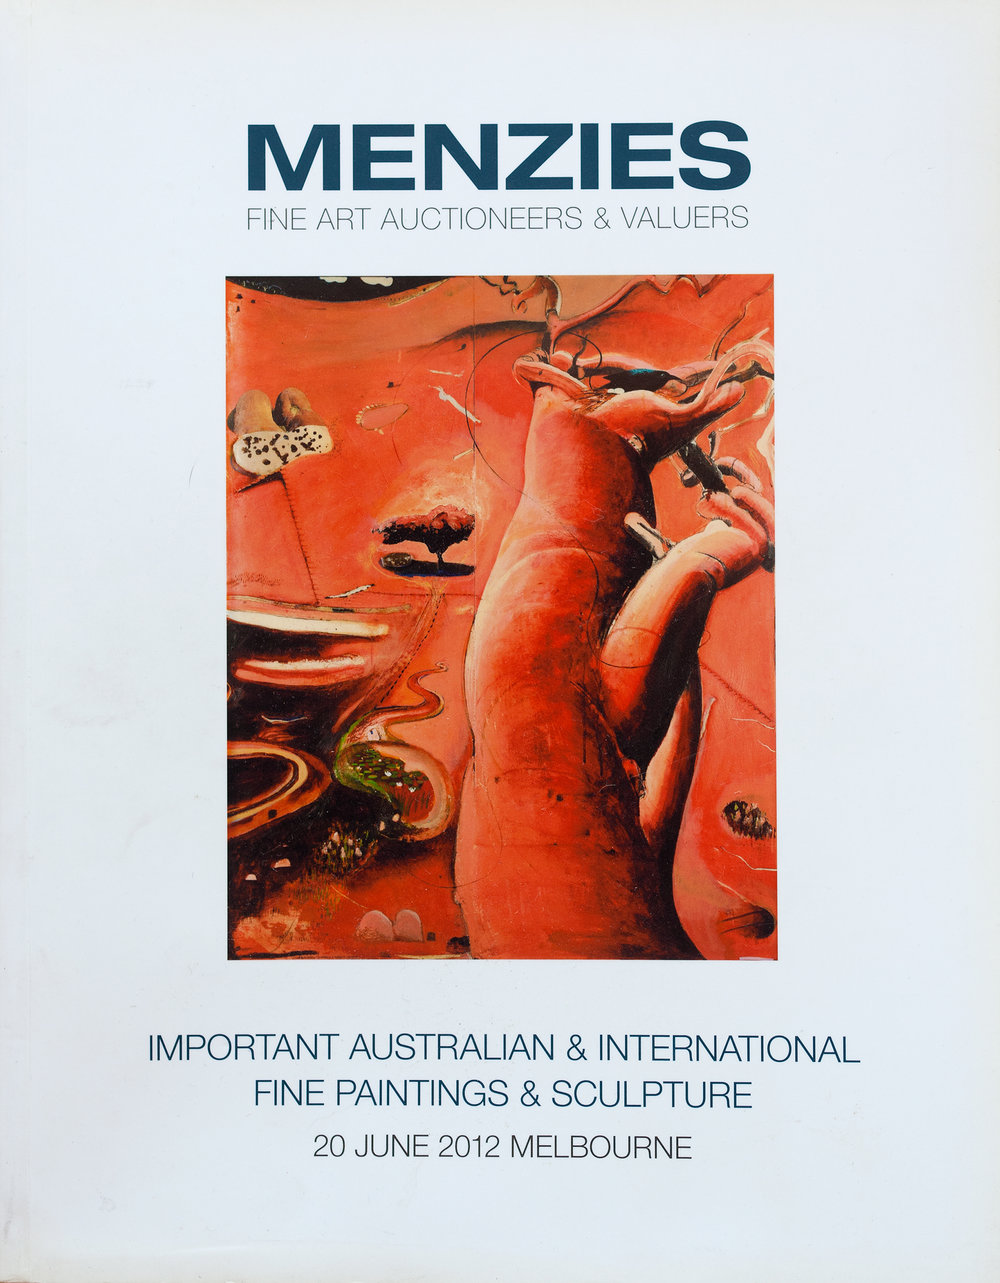 171023 Menzies Catalogues_006.jpg